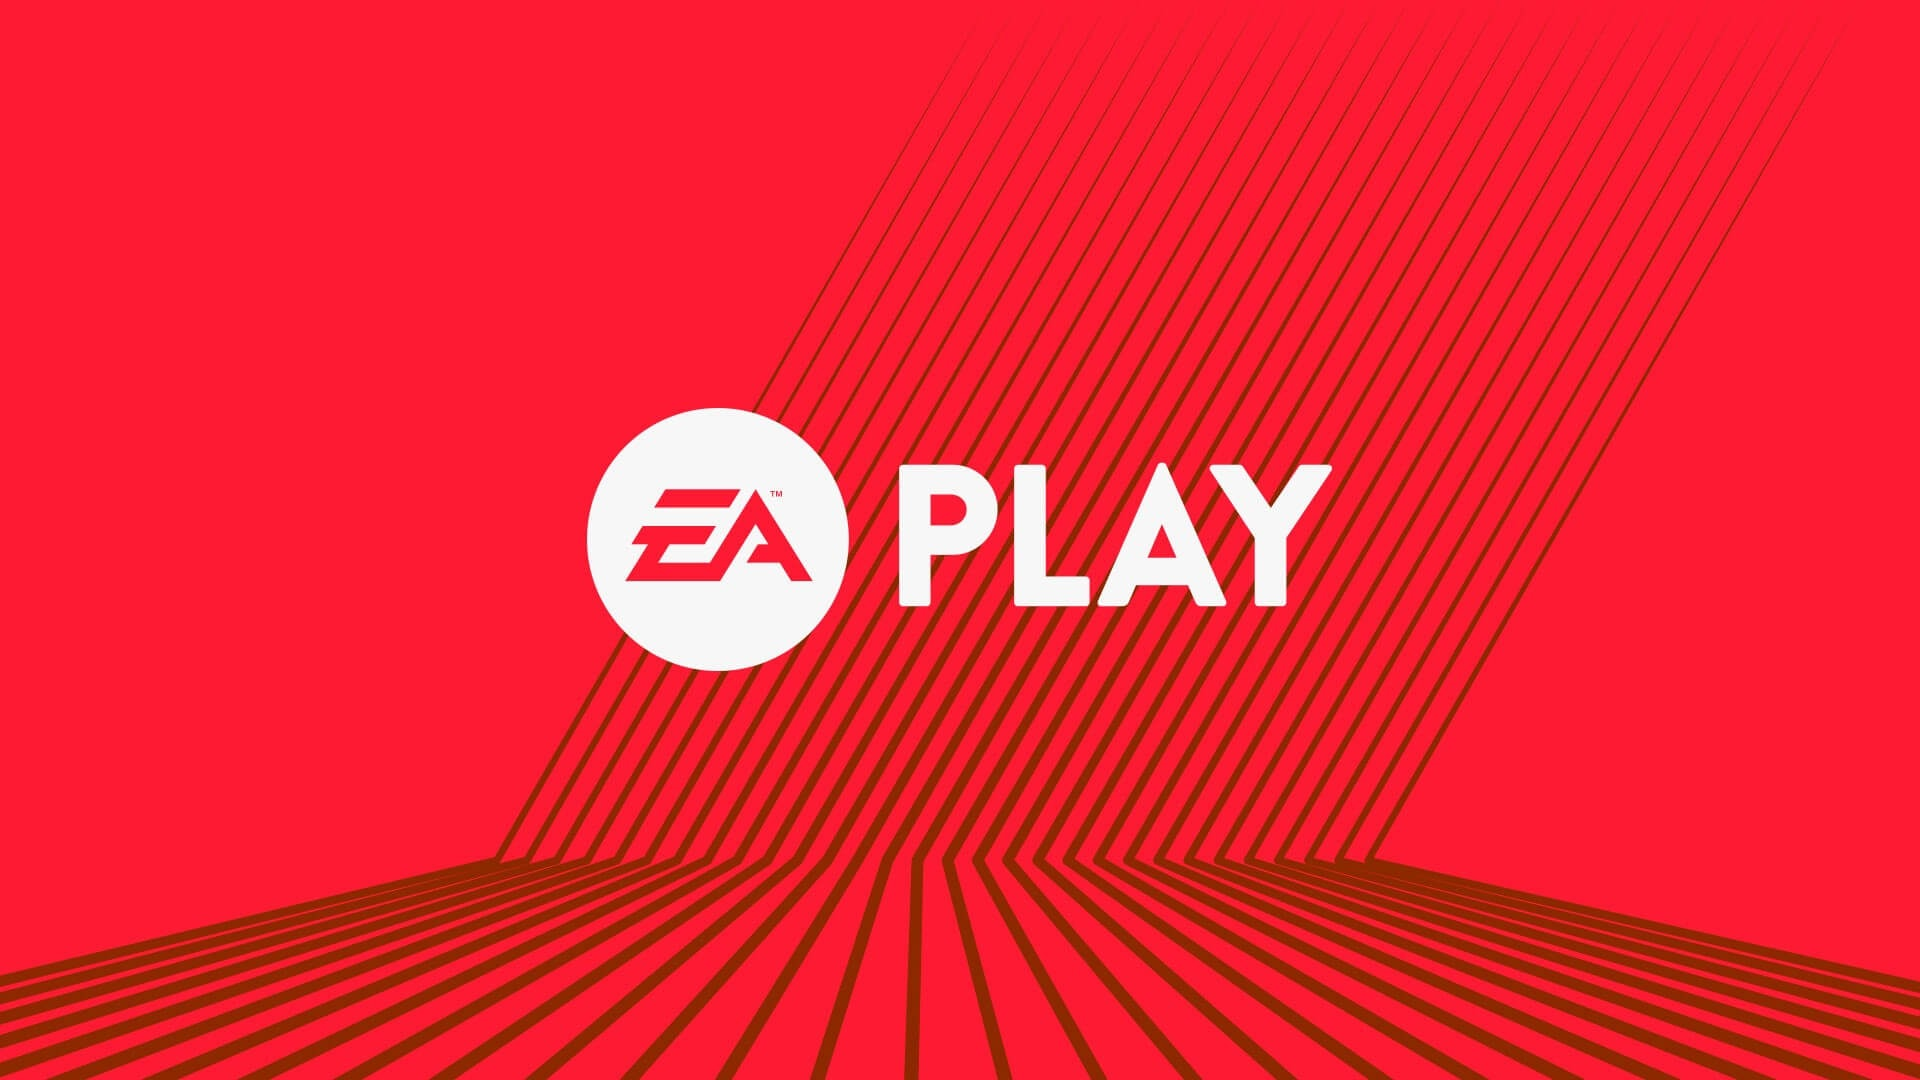 EA Reveals E3 2018 Plans With EA Play 2018